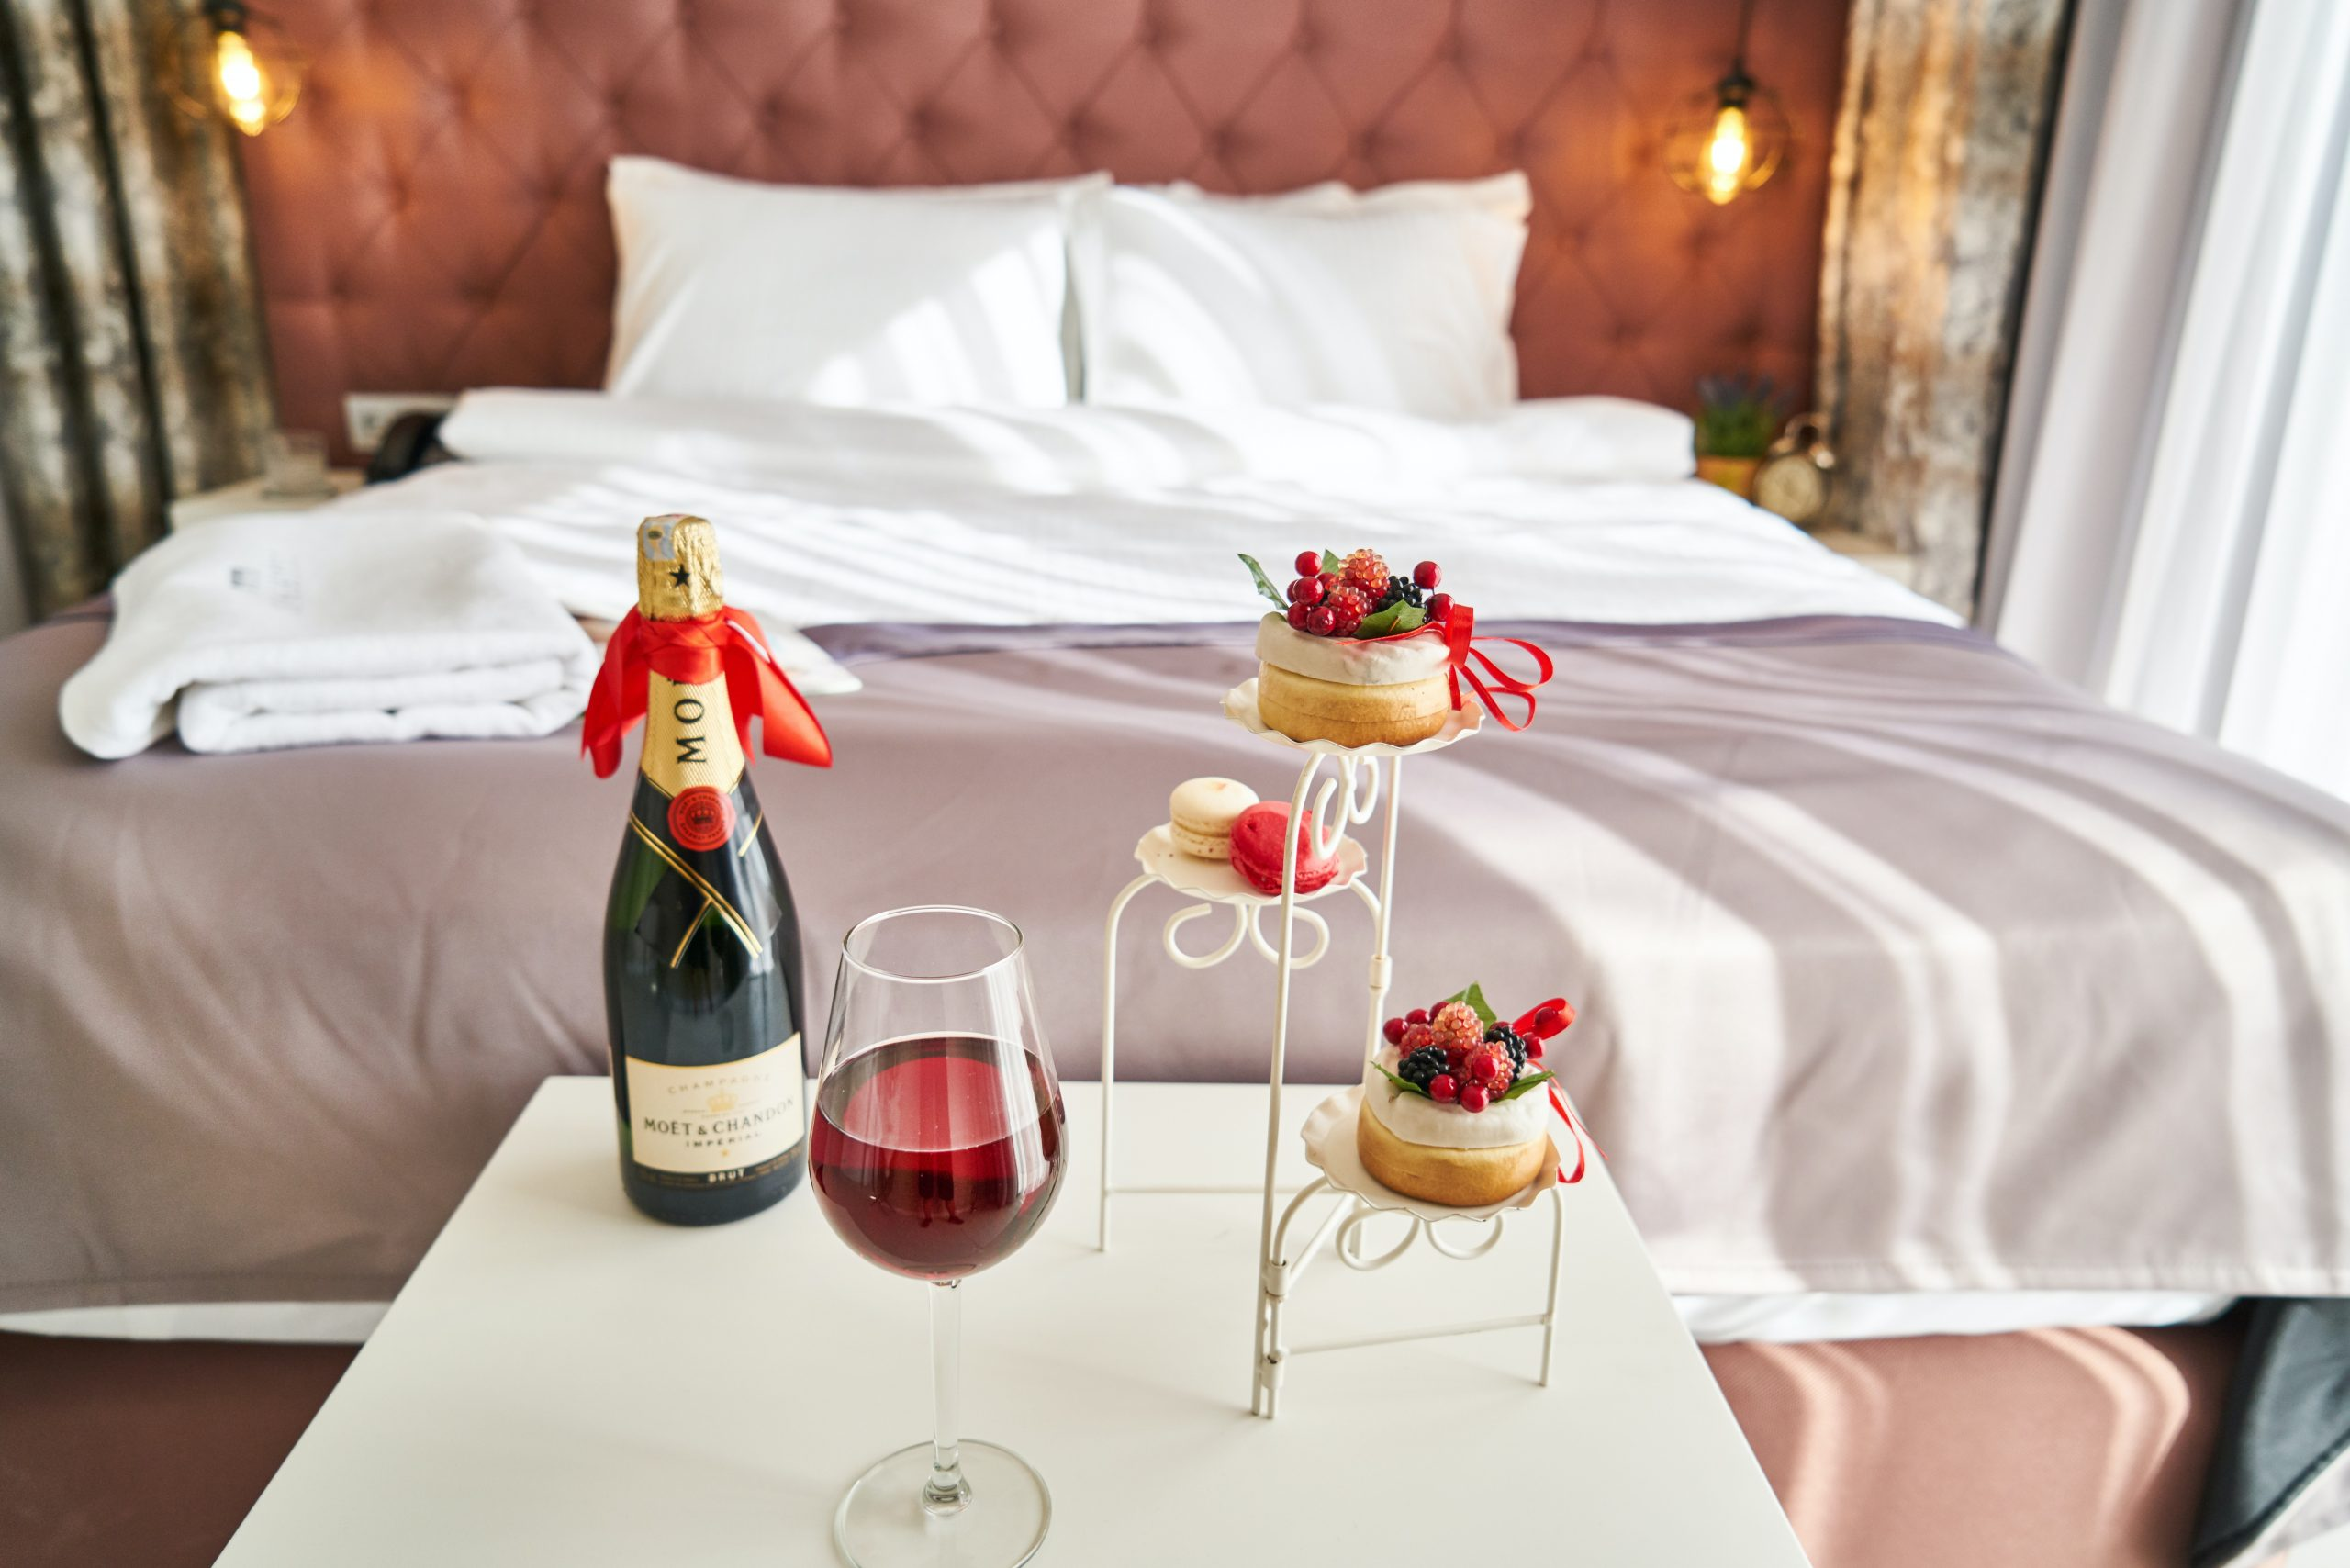 hotel room with wine and pastries